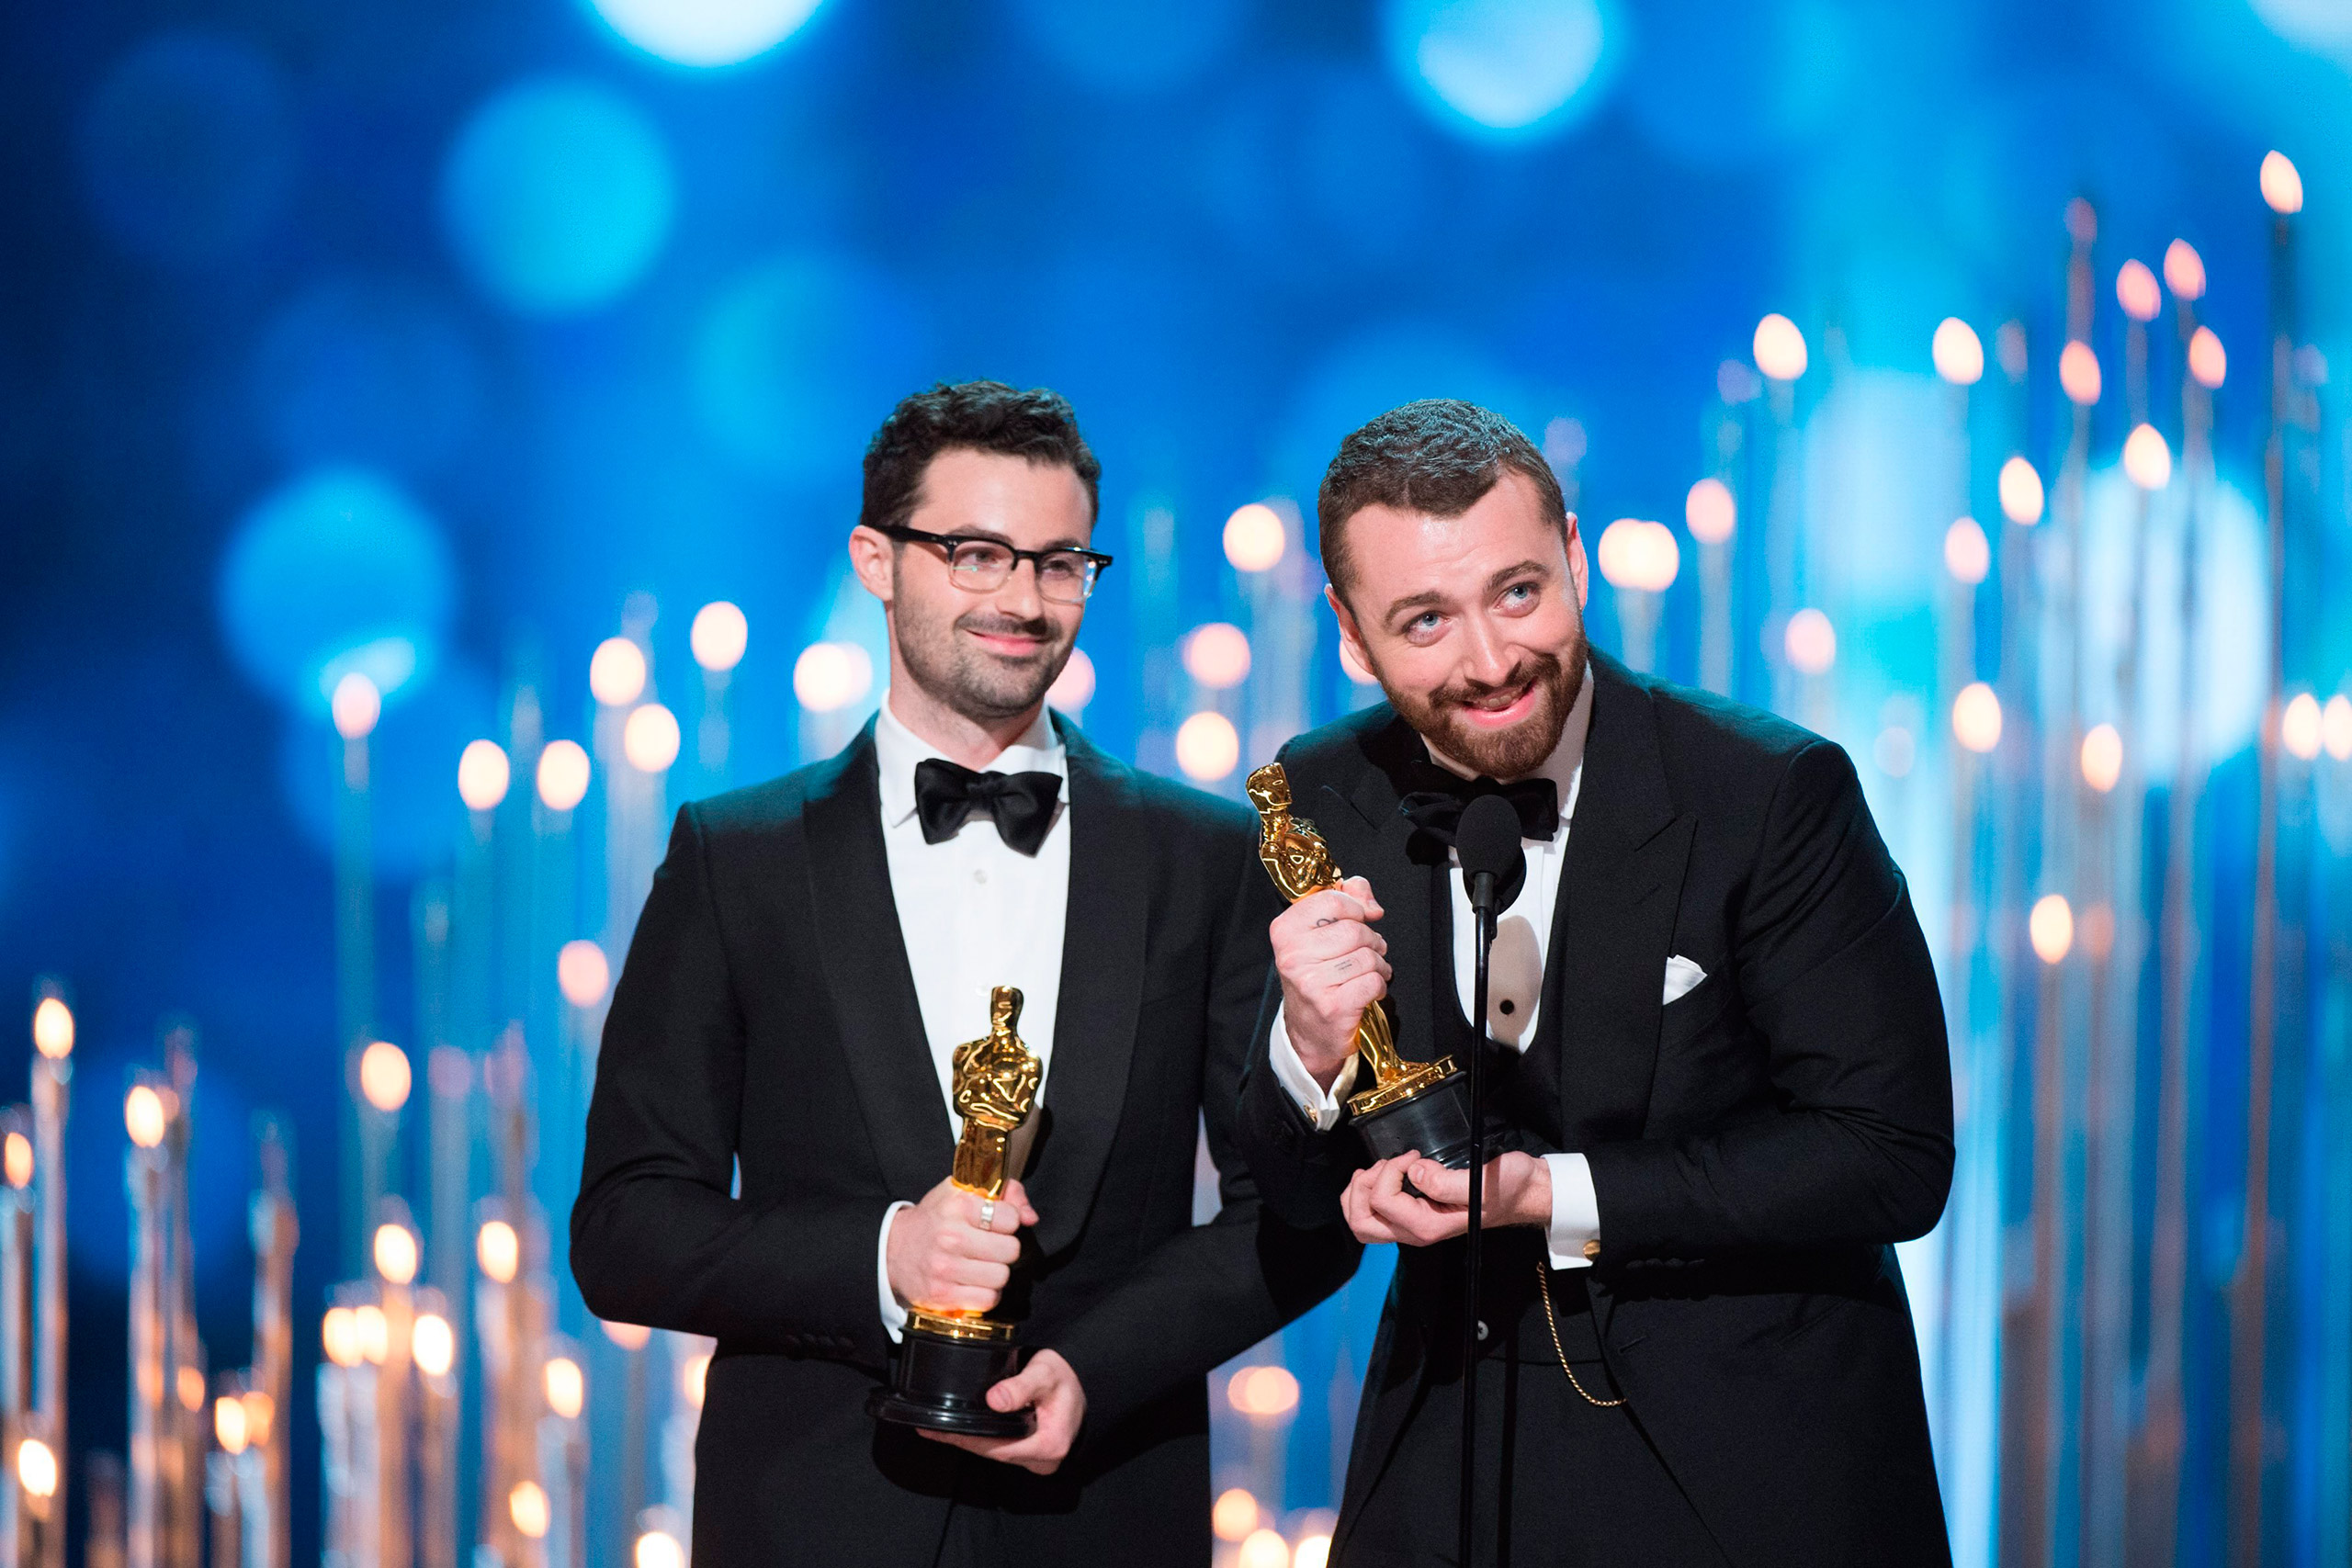 A handout image provided by the Academy of Motion Picture Arts and Science shows Jimmy Napes (left) and Sam Smith (right) accepting the Oscar for Best Original Song for  Writing's On The Wall  from SPECTRE during the 88th annual Academy Awards ceremony at the Dolby Theatre in Hollywood, Calif., Feb. 28, 2016.